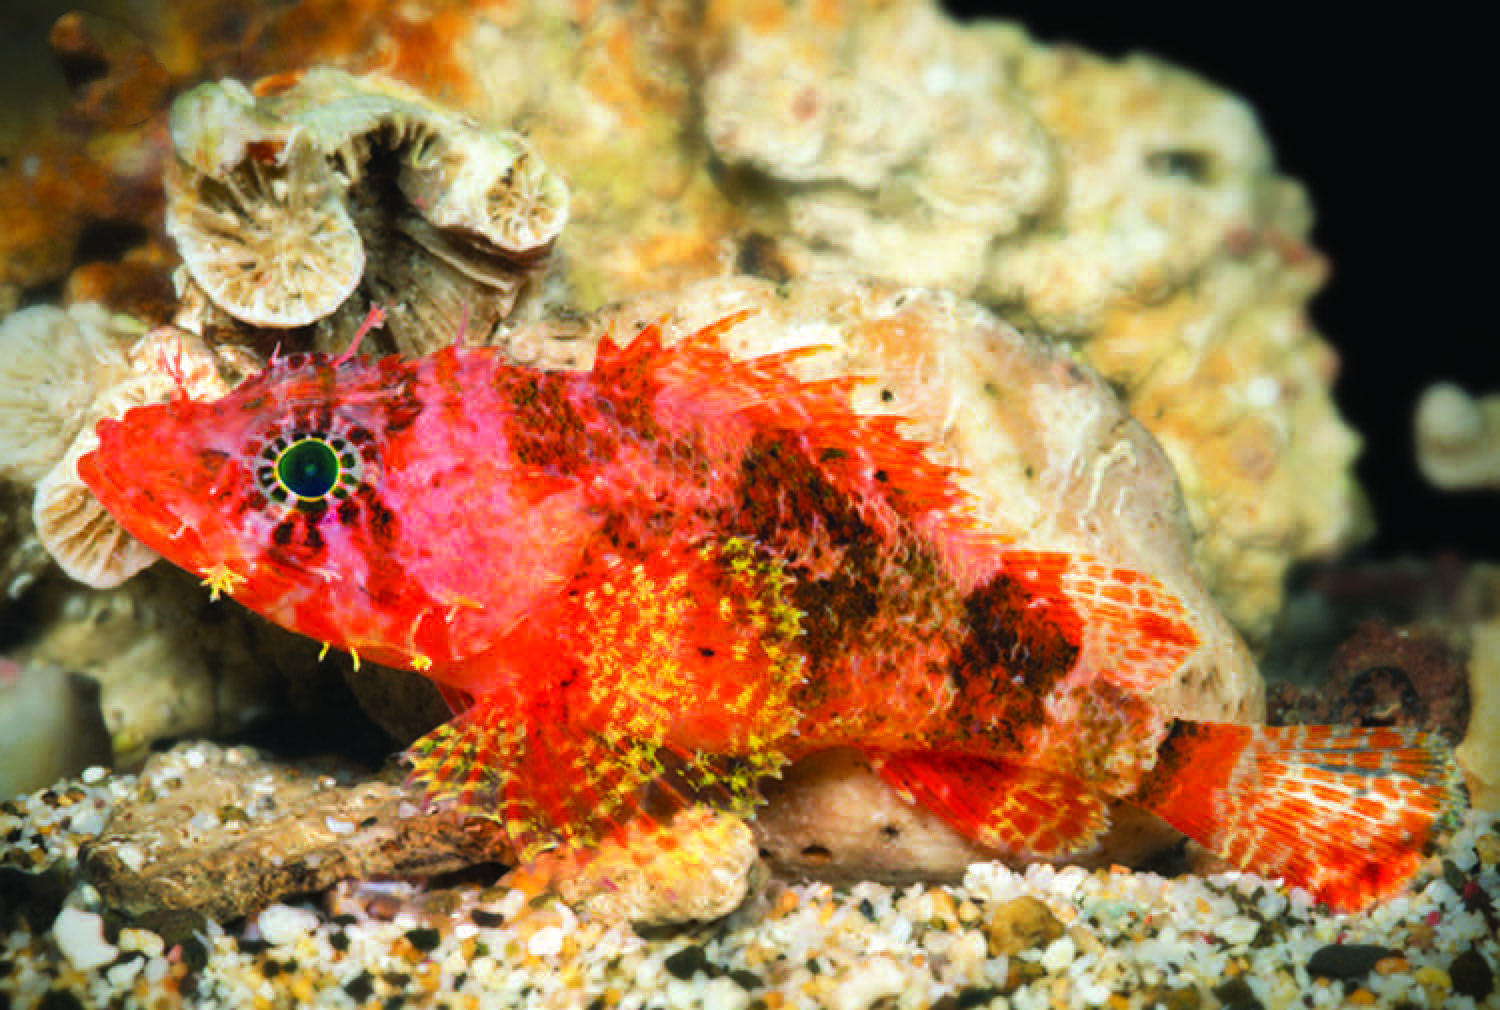 New bright orange-red scorpionfish discovered deep in Caribbean ...